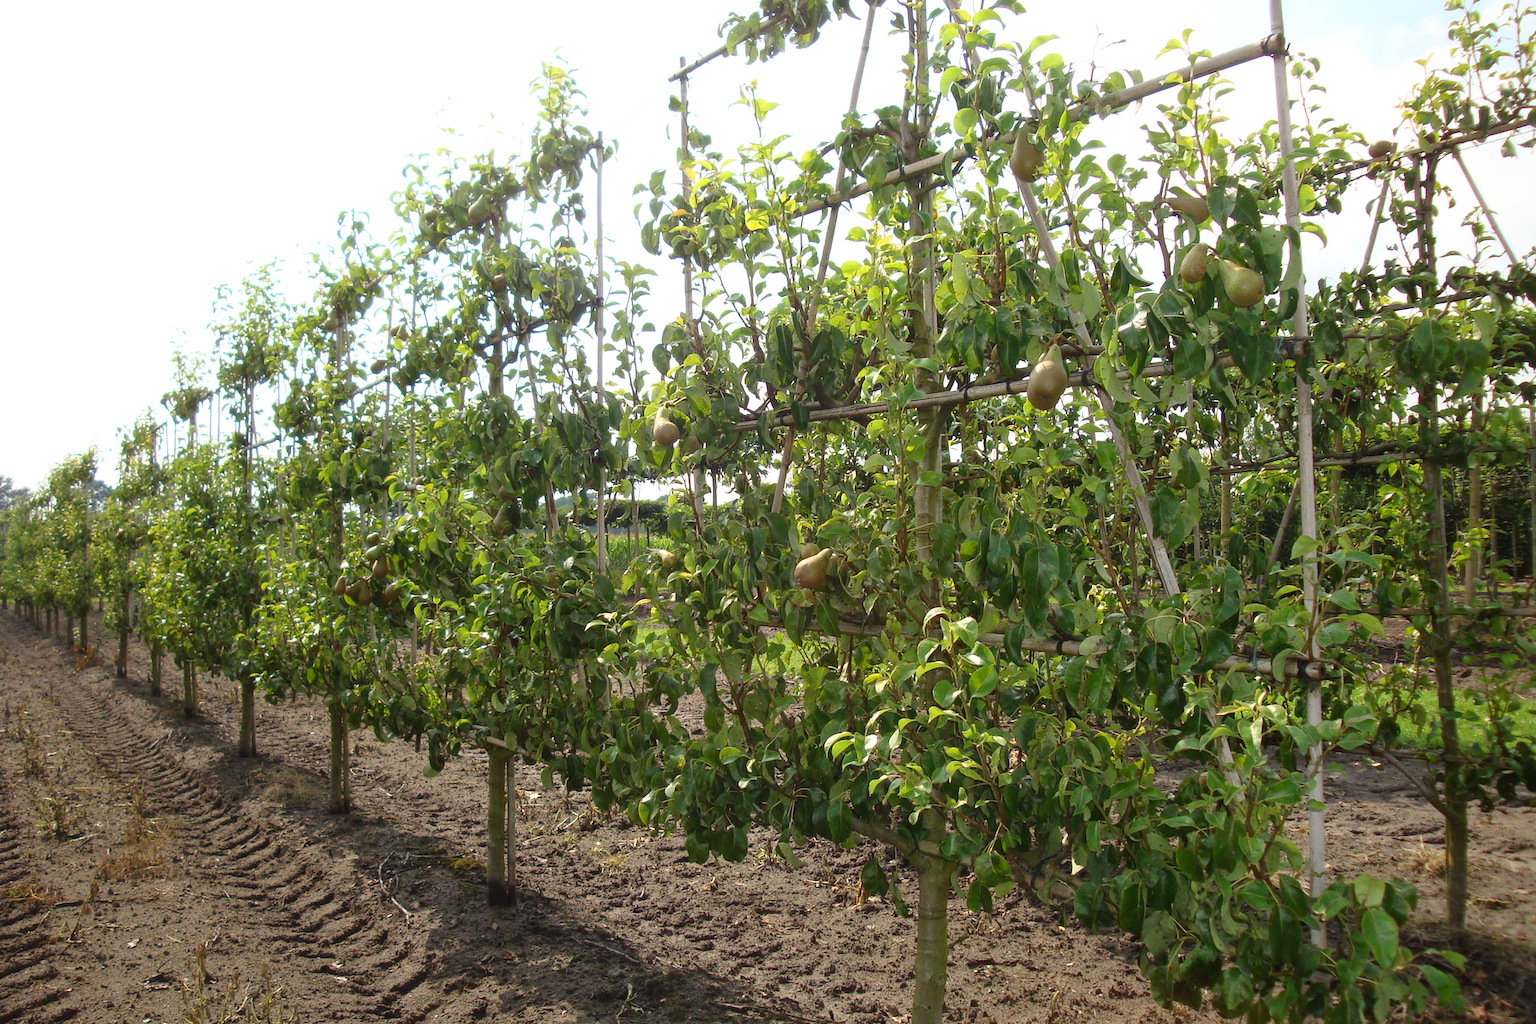 Pyrus communis 'Conference' low espalier pleached pear trees 14-16 grade